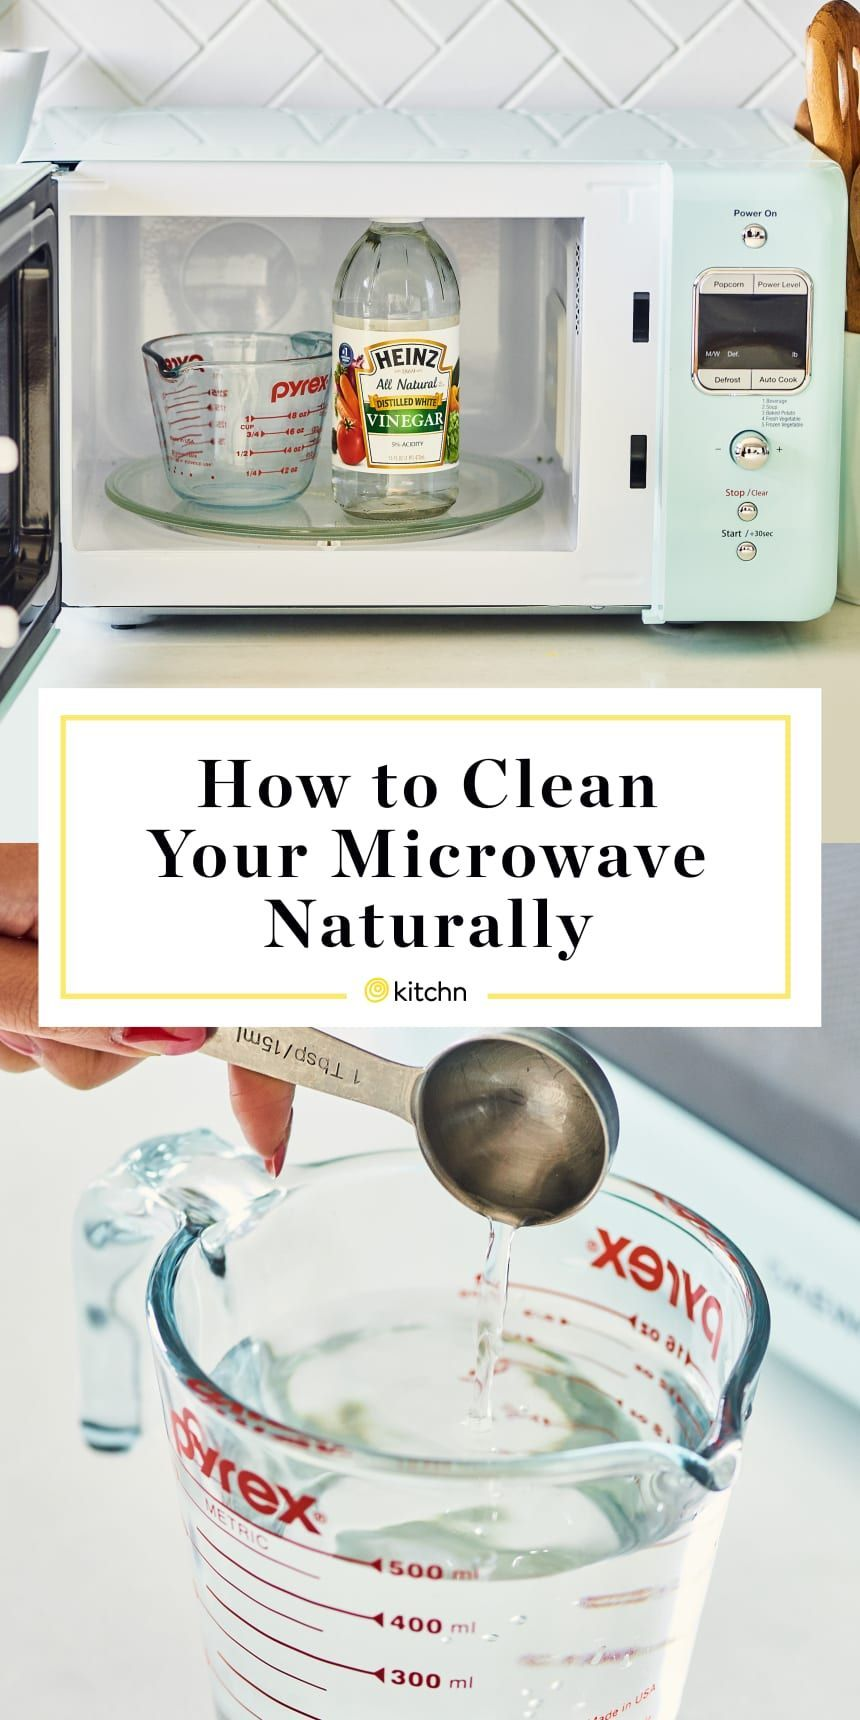 How To Clean A Microwave With Vinegar Hausreinigungs Tipps Mikrowelle Und Badreiniger